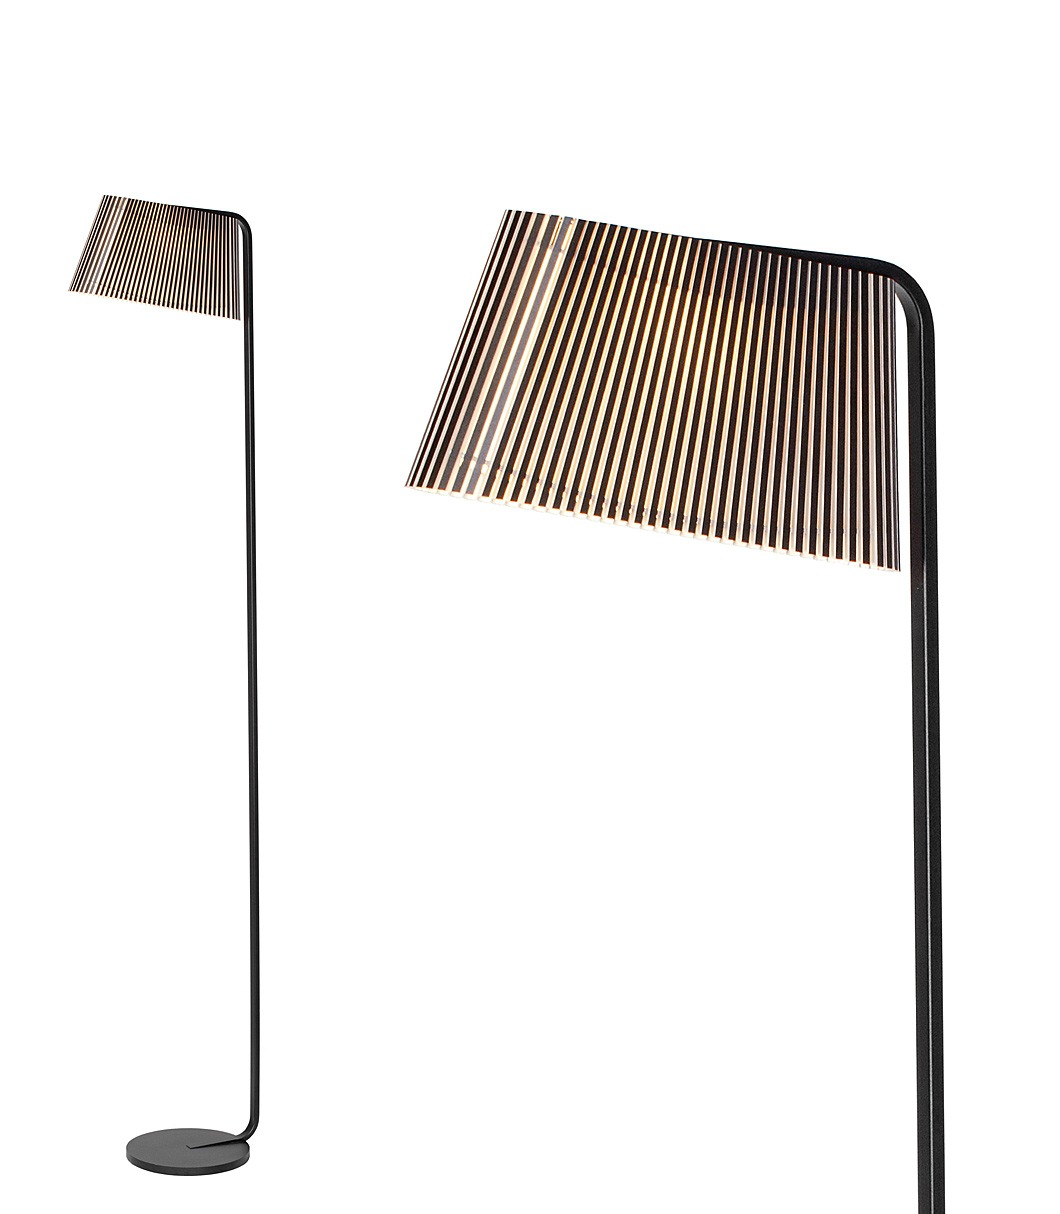 Owalo 7010 floor lamp color black